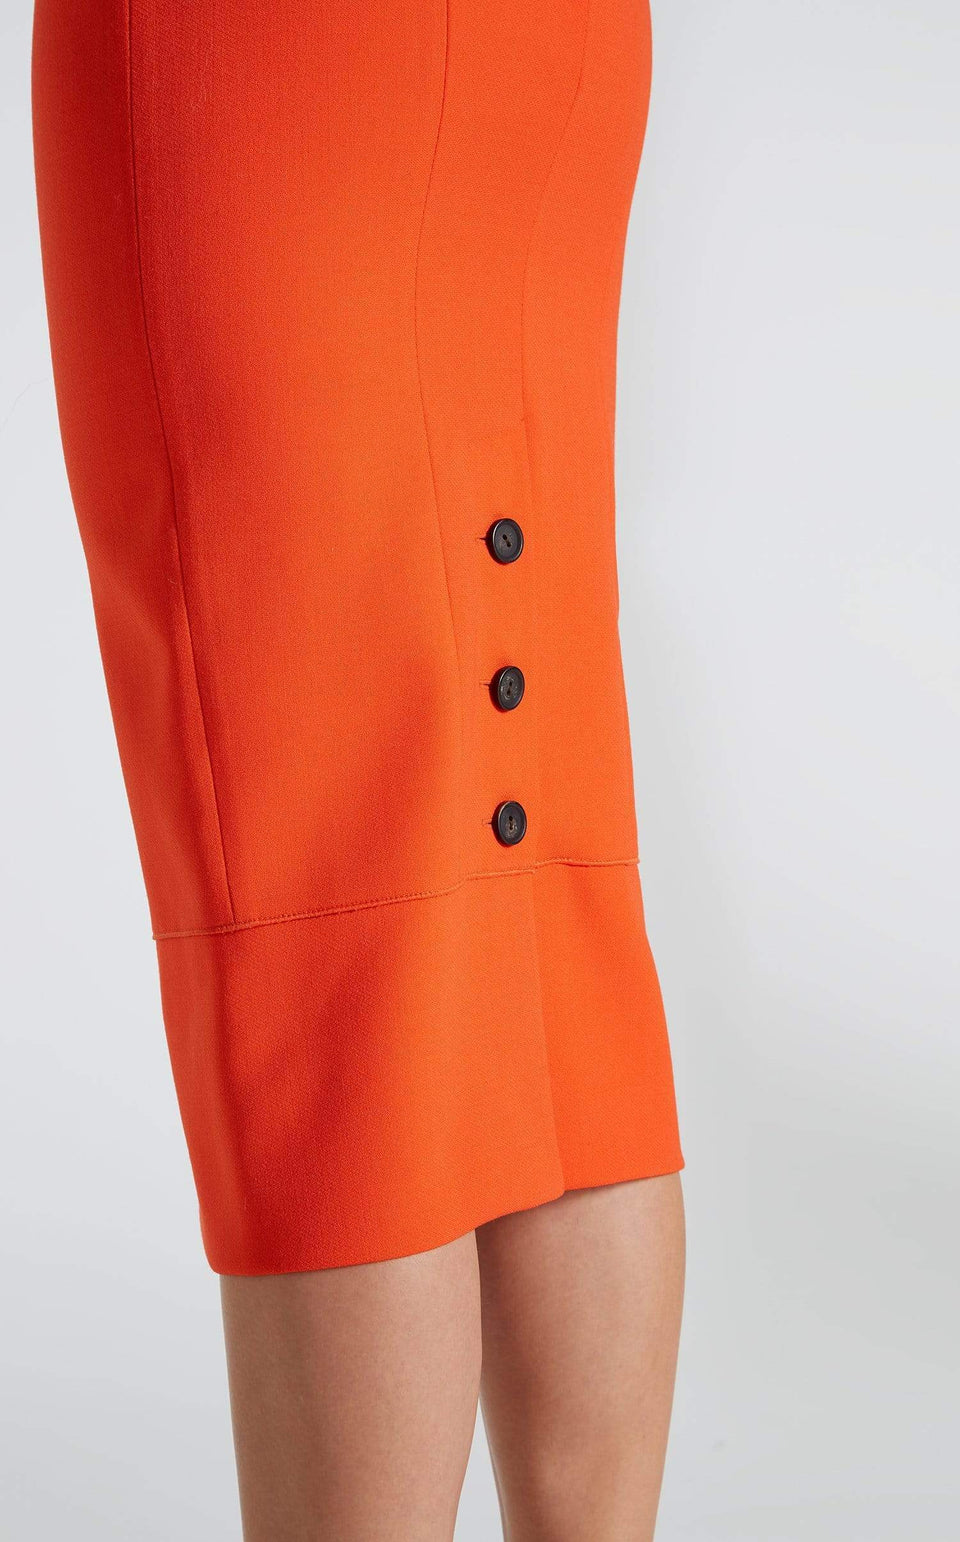 Galaxy Skirt In Bright Orange from Roland Mouret